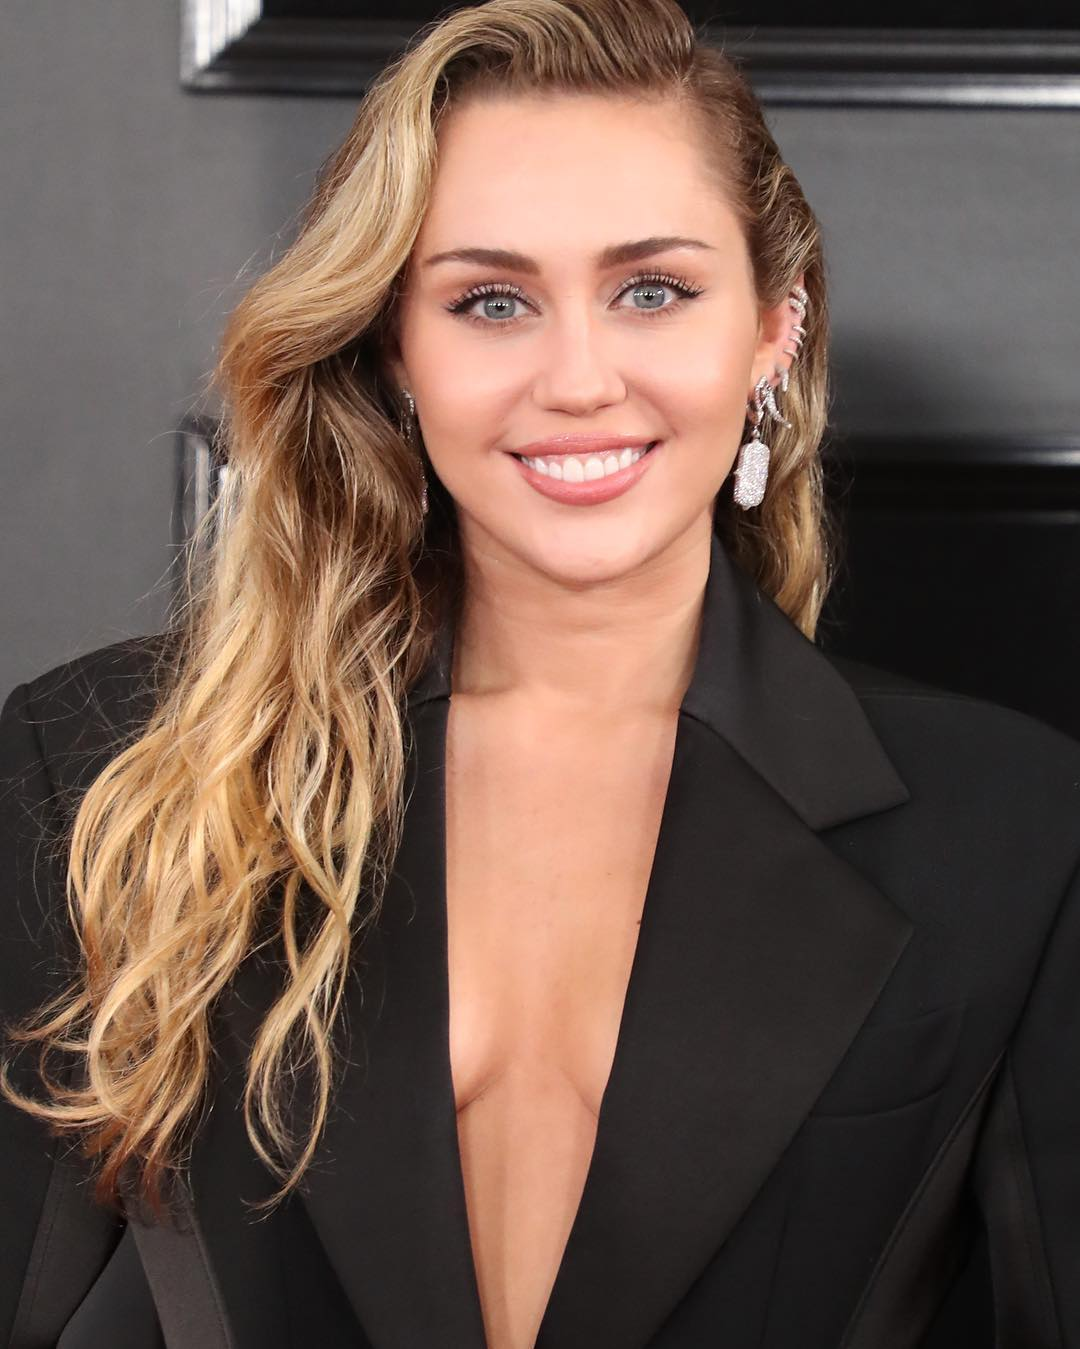 Grammys 2019 Beauty Miley Cyrus